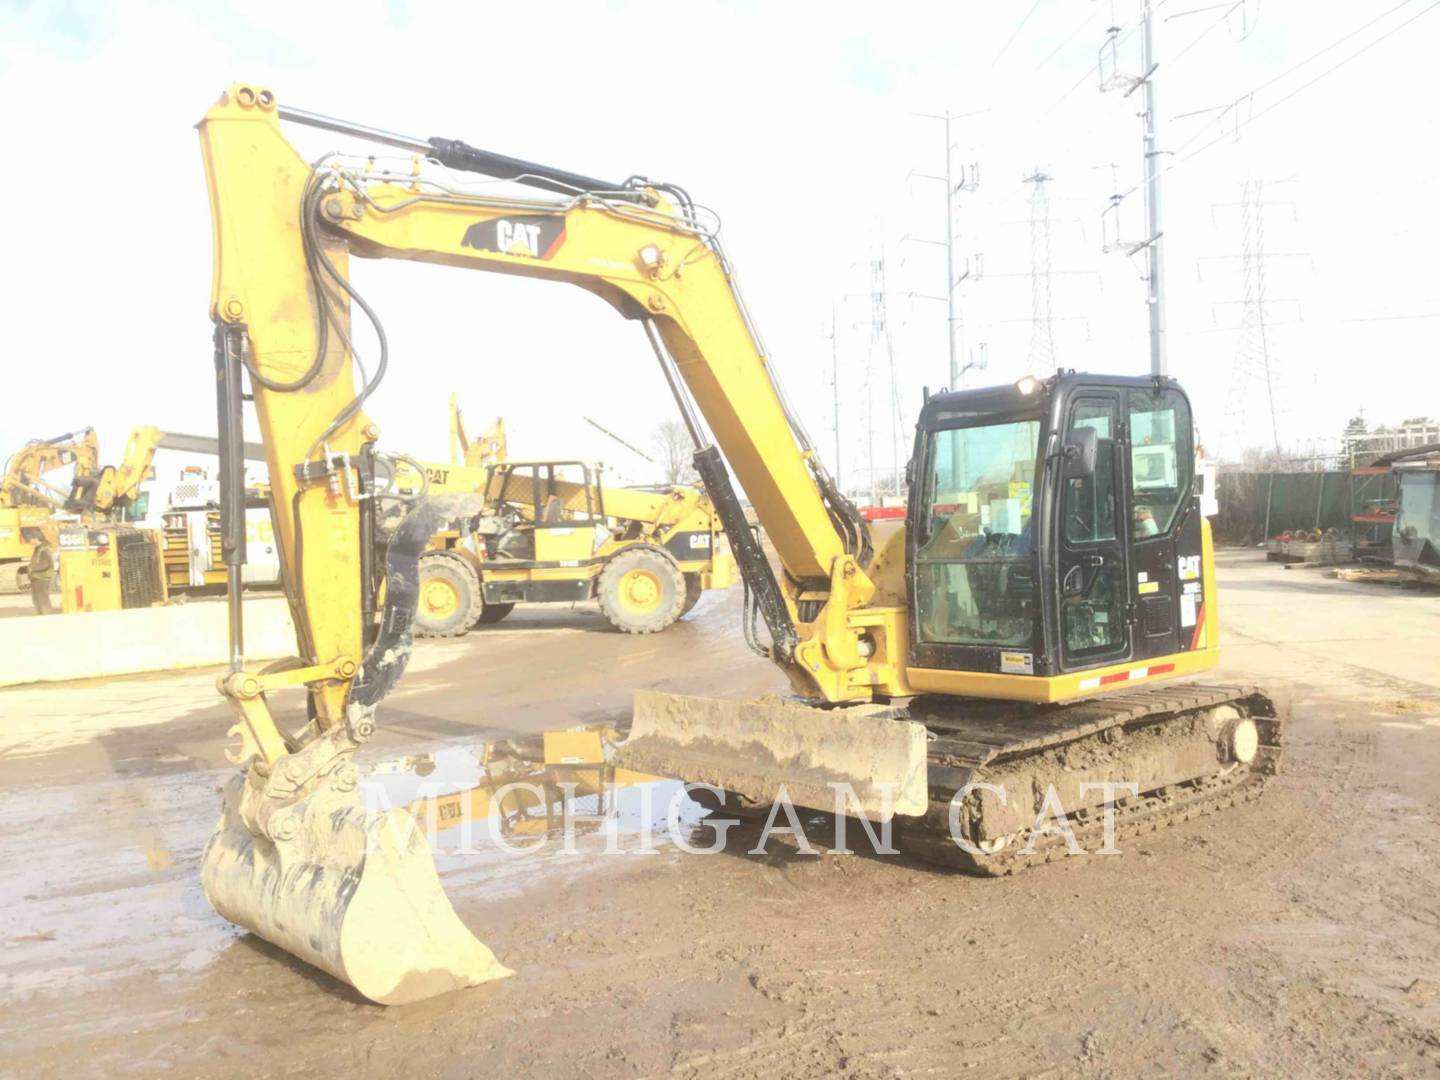 2015 Caterpillar 308E2 Excavators and Mini Excavator